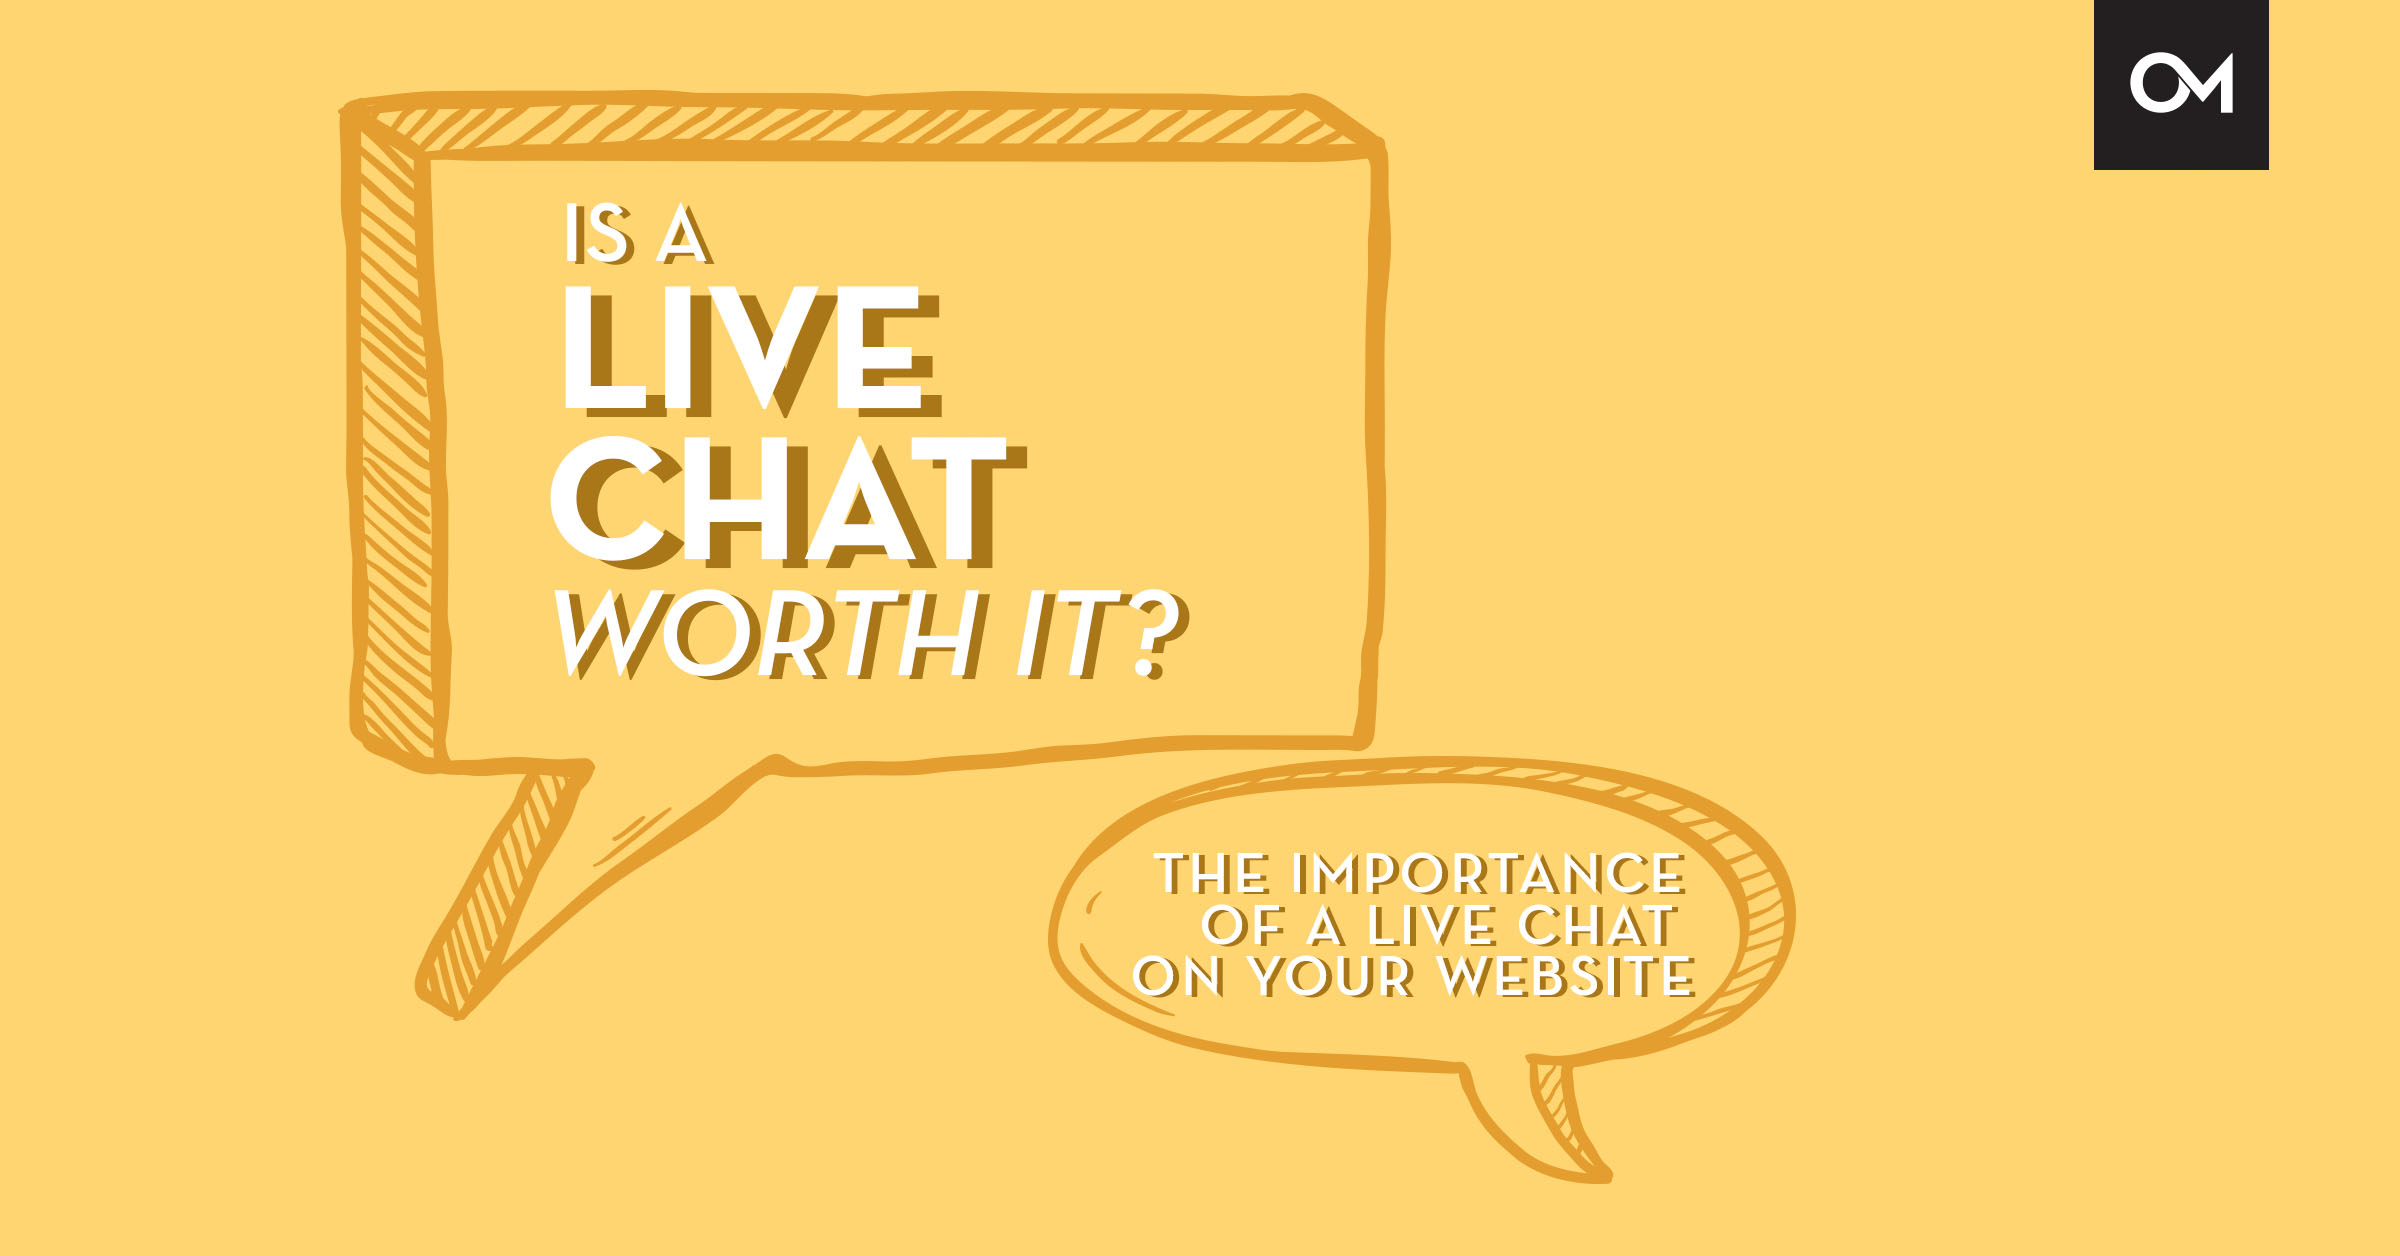 Is a live chat worth it? The importance of a live chat on your website